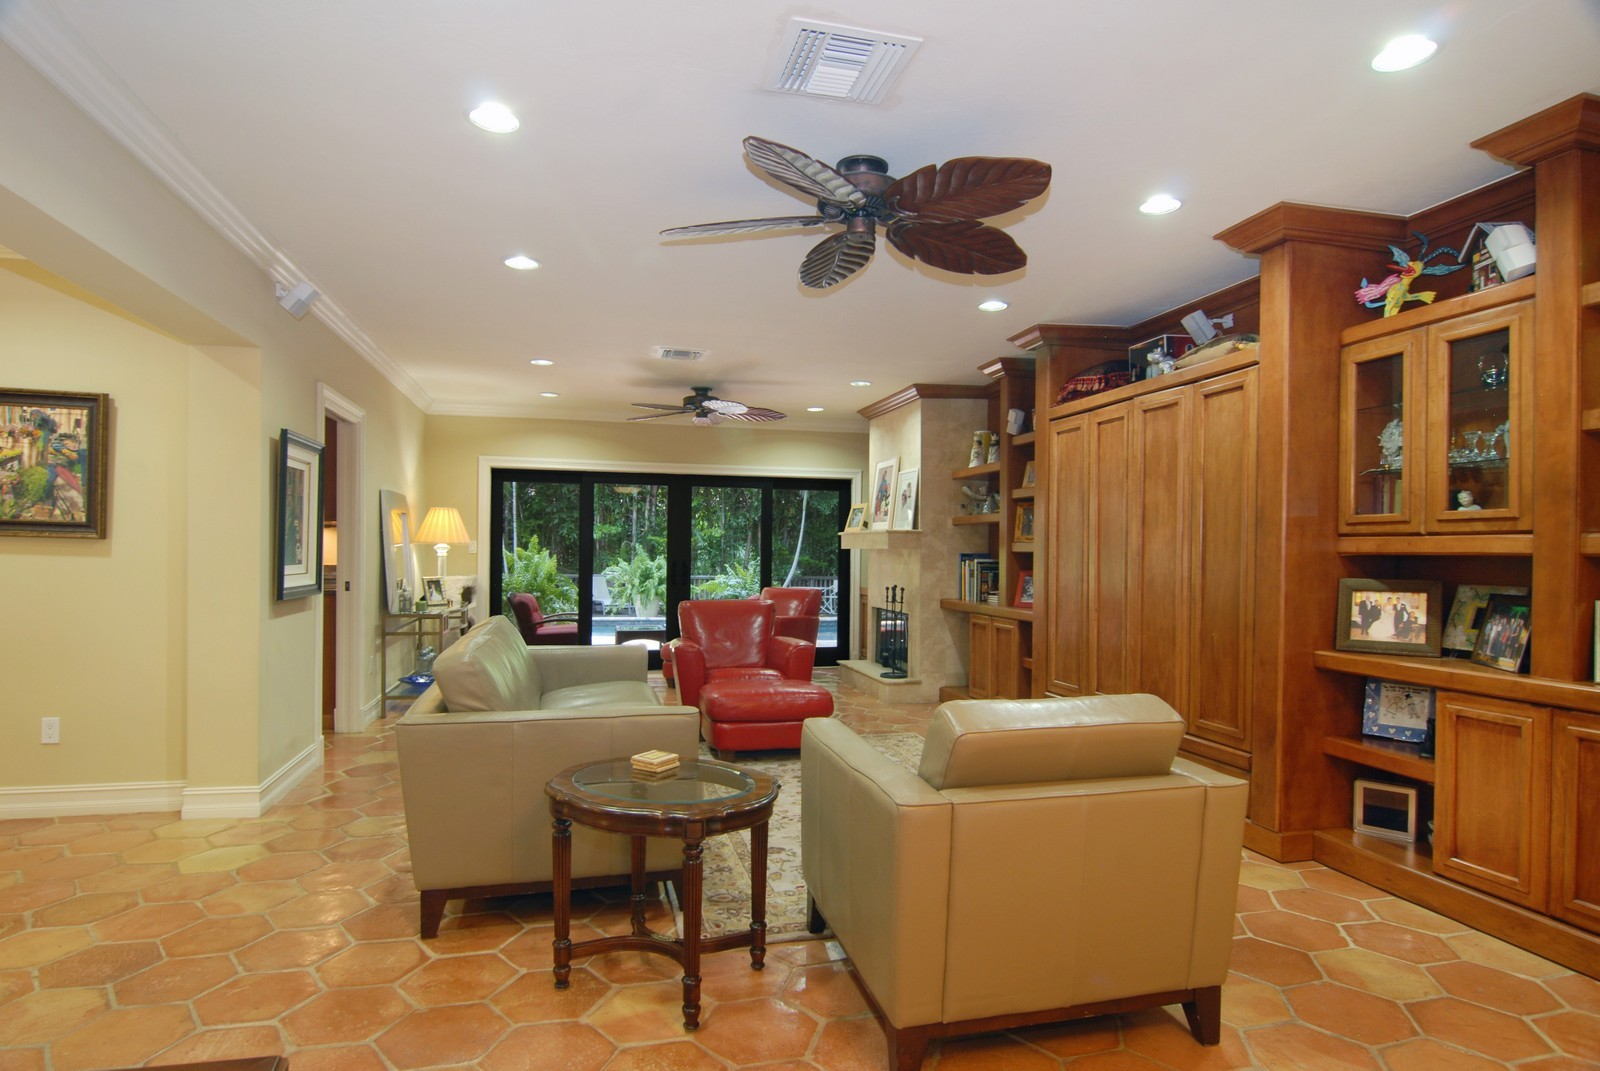 Real Estate Photography - 3403 Poinciana, Coconut Grove, FL, 33133 - Living Room